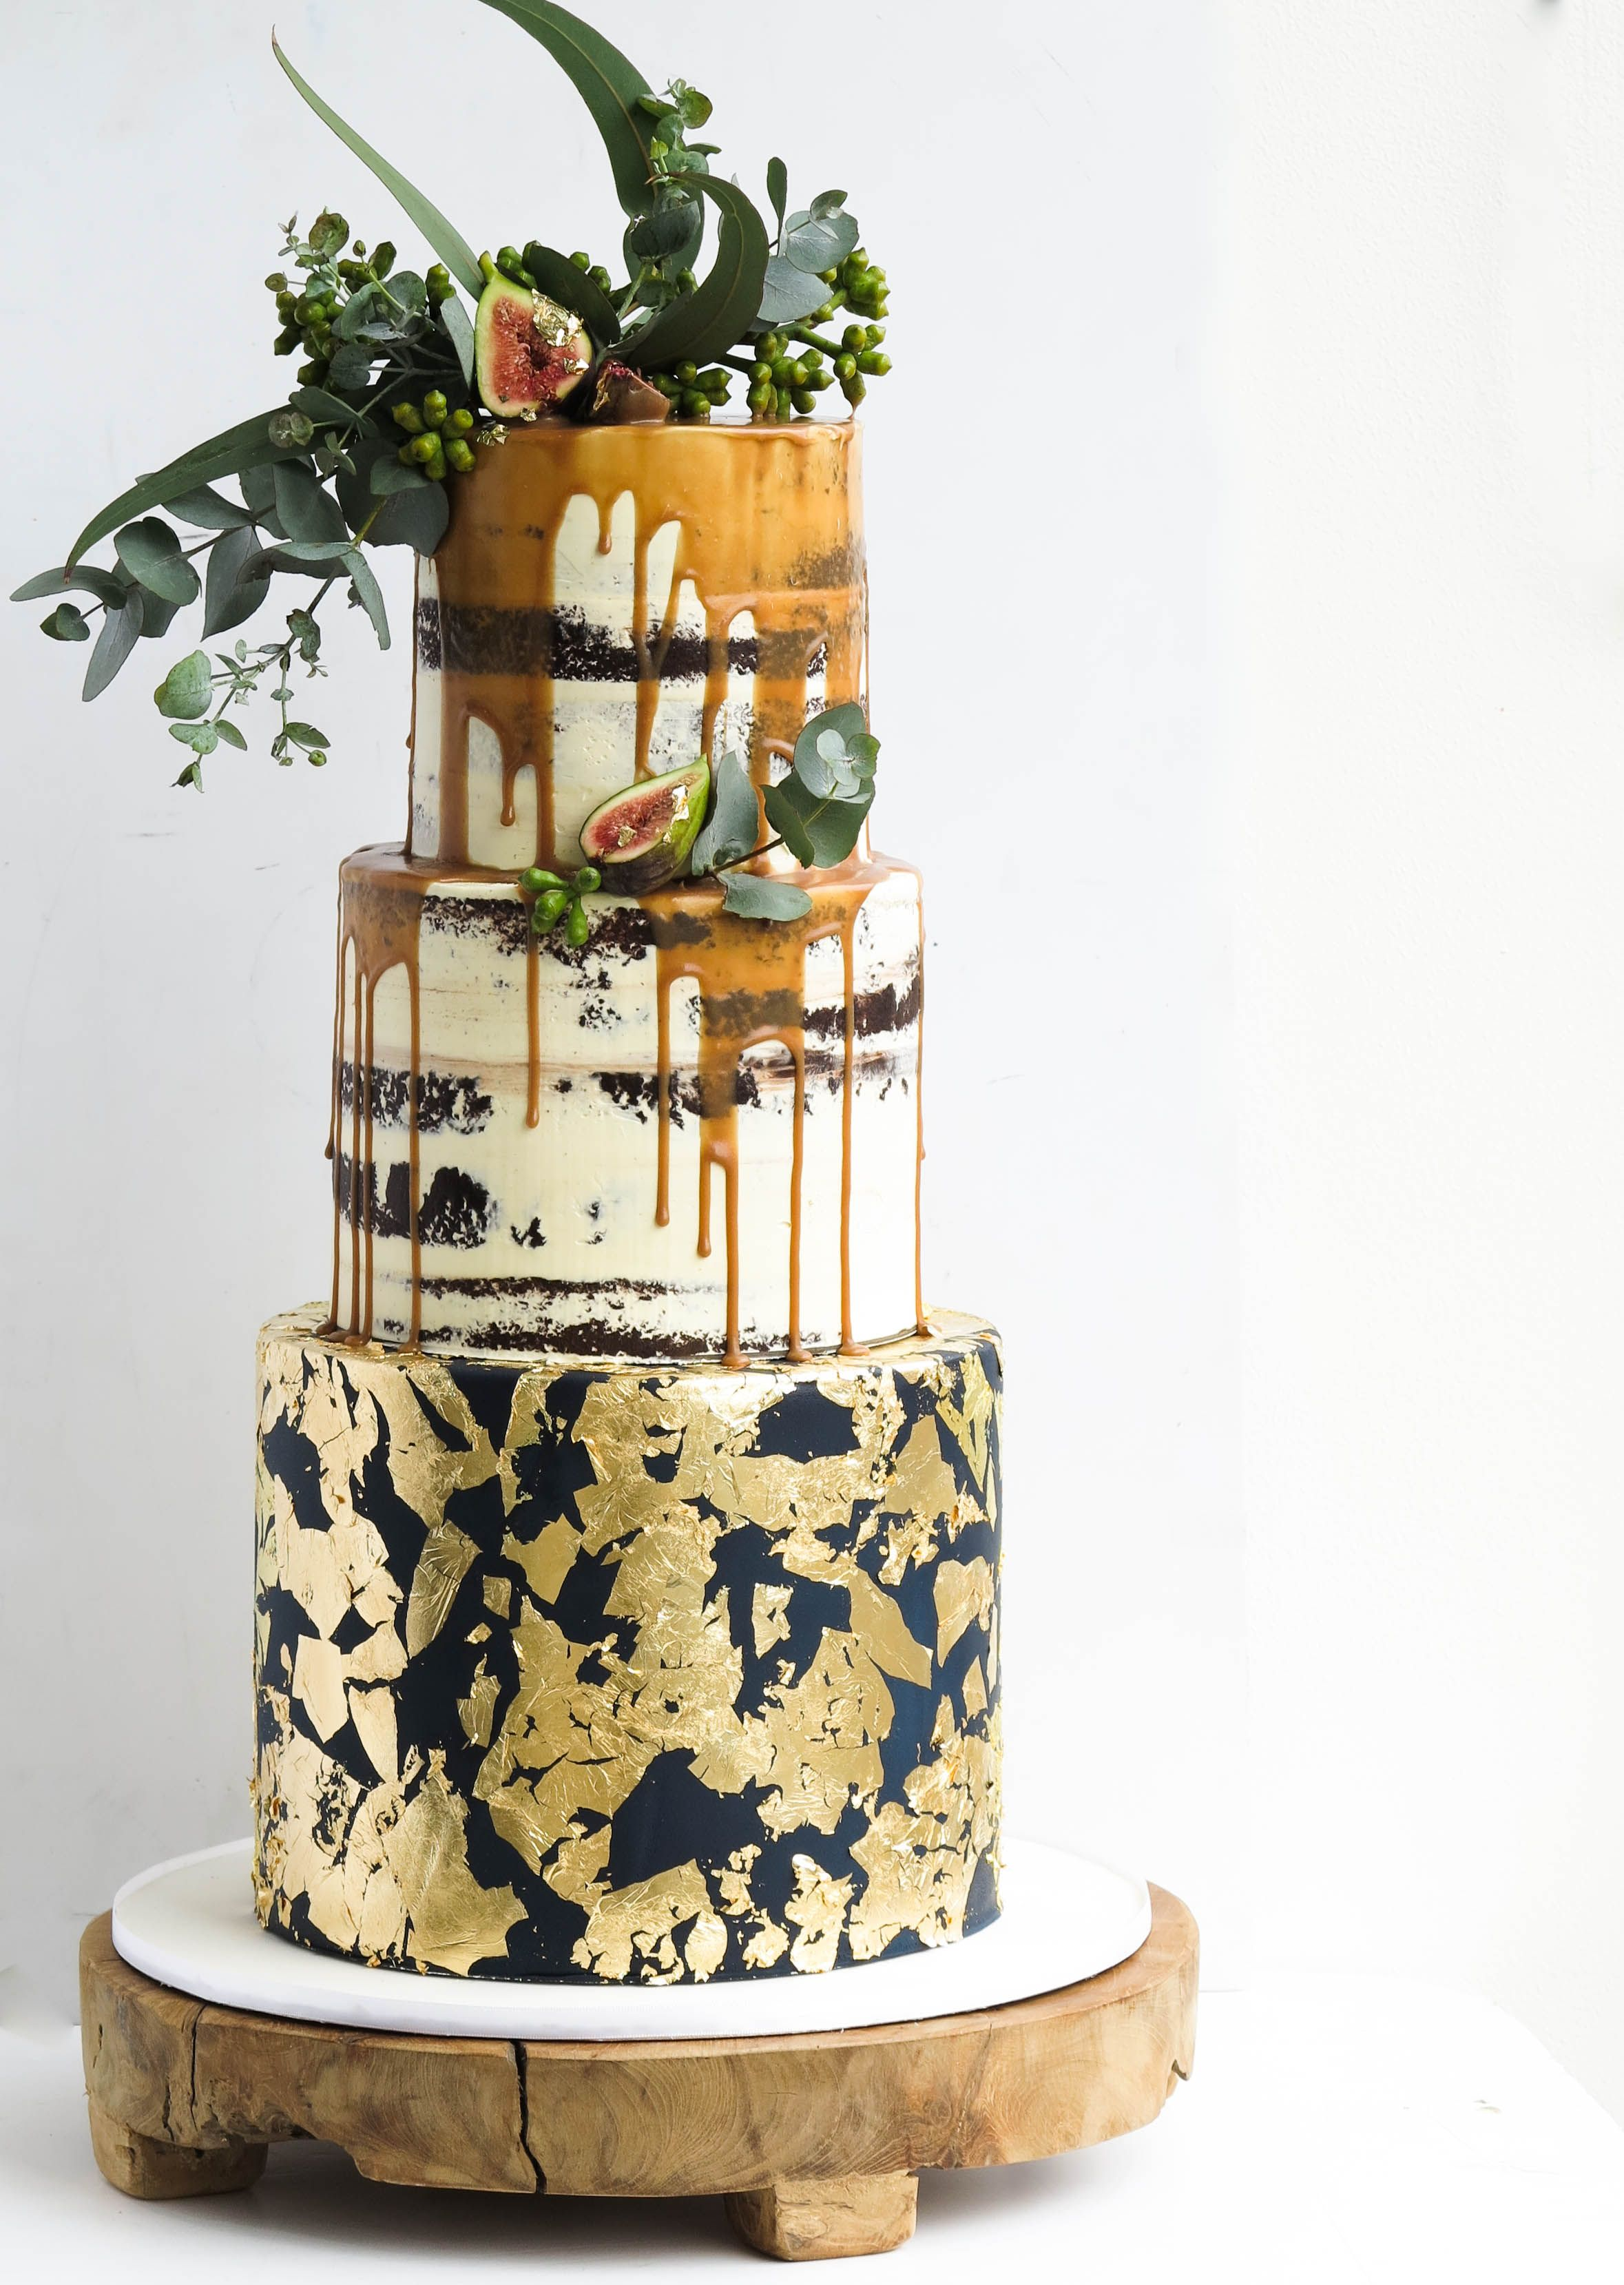 15 Elegant Fall Wedding Cakes - Ideas for Fall Wedding Cake Flavors ...